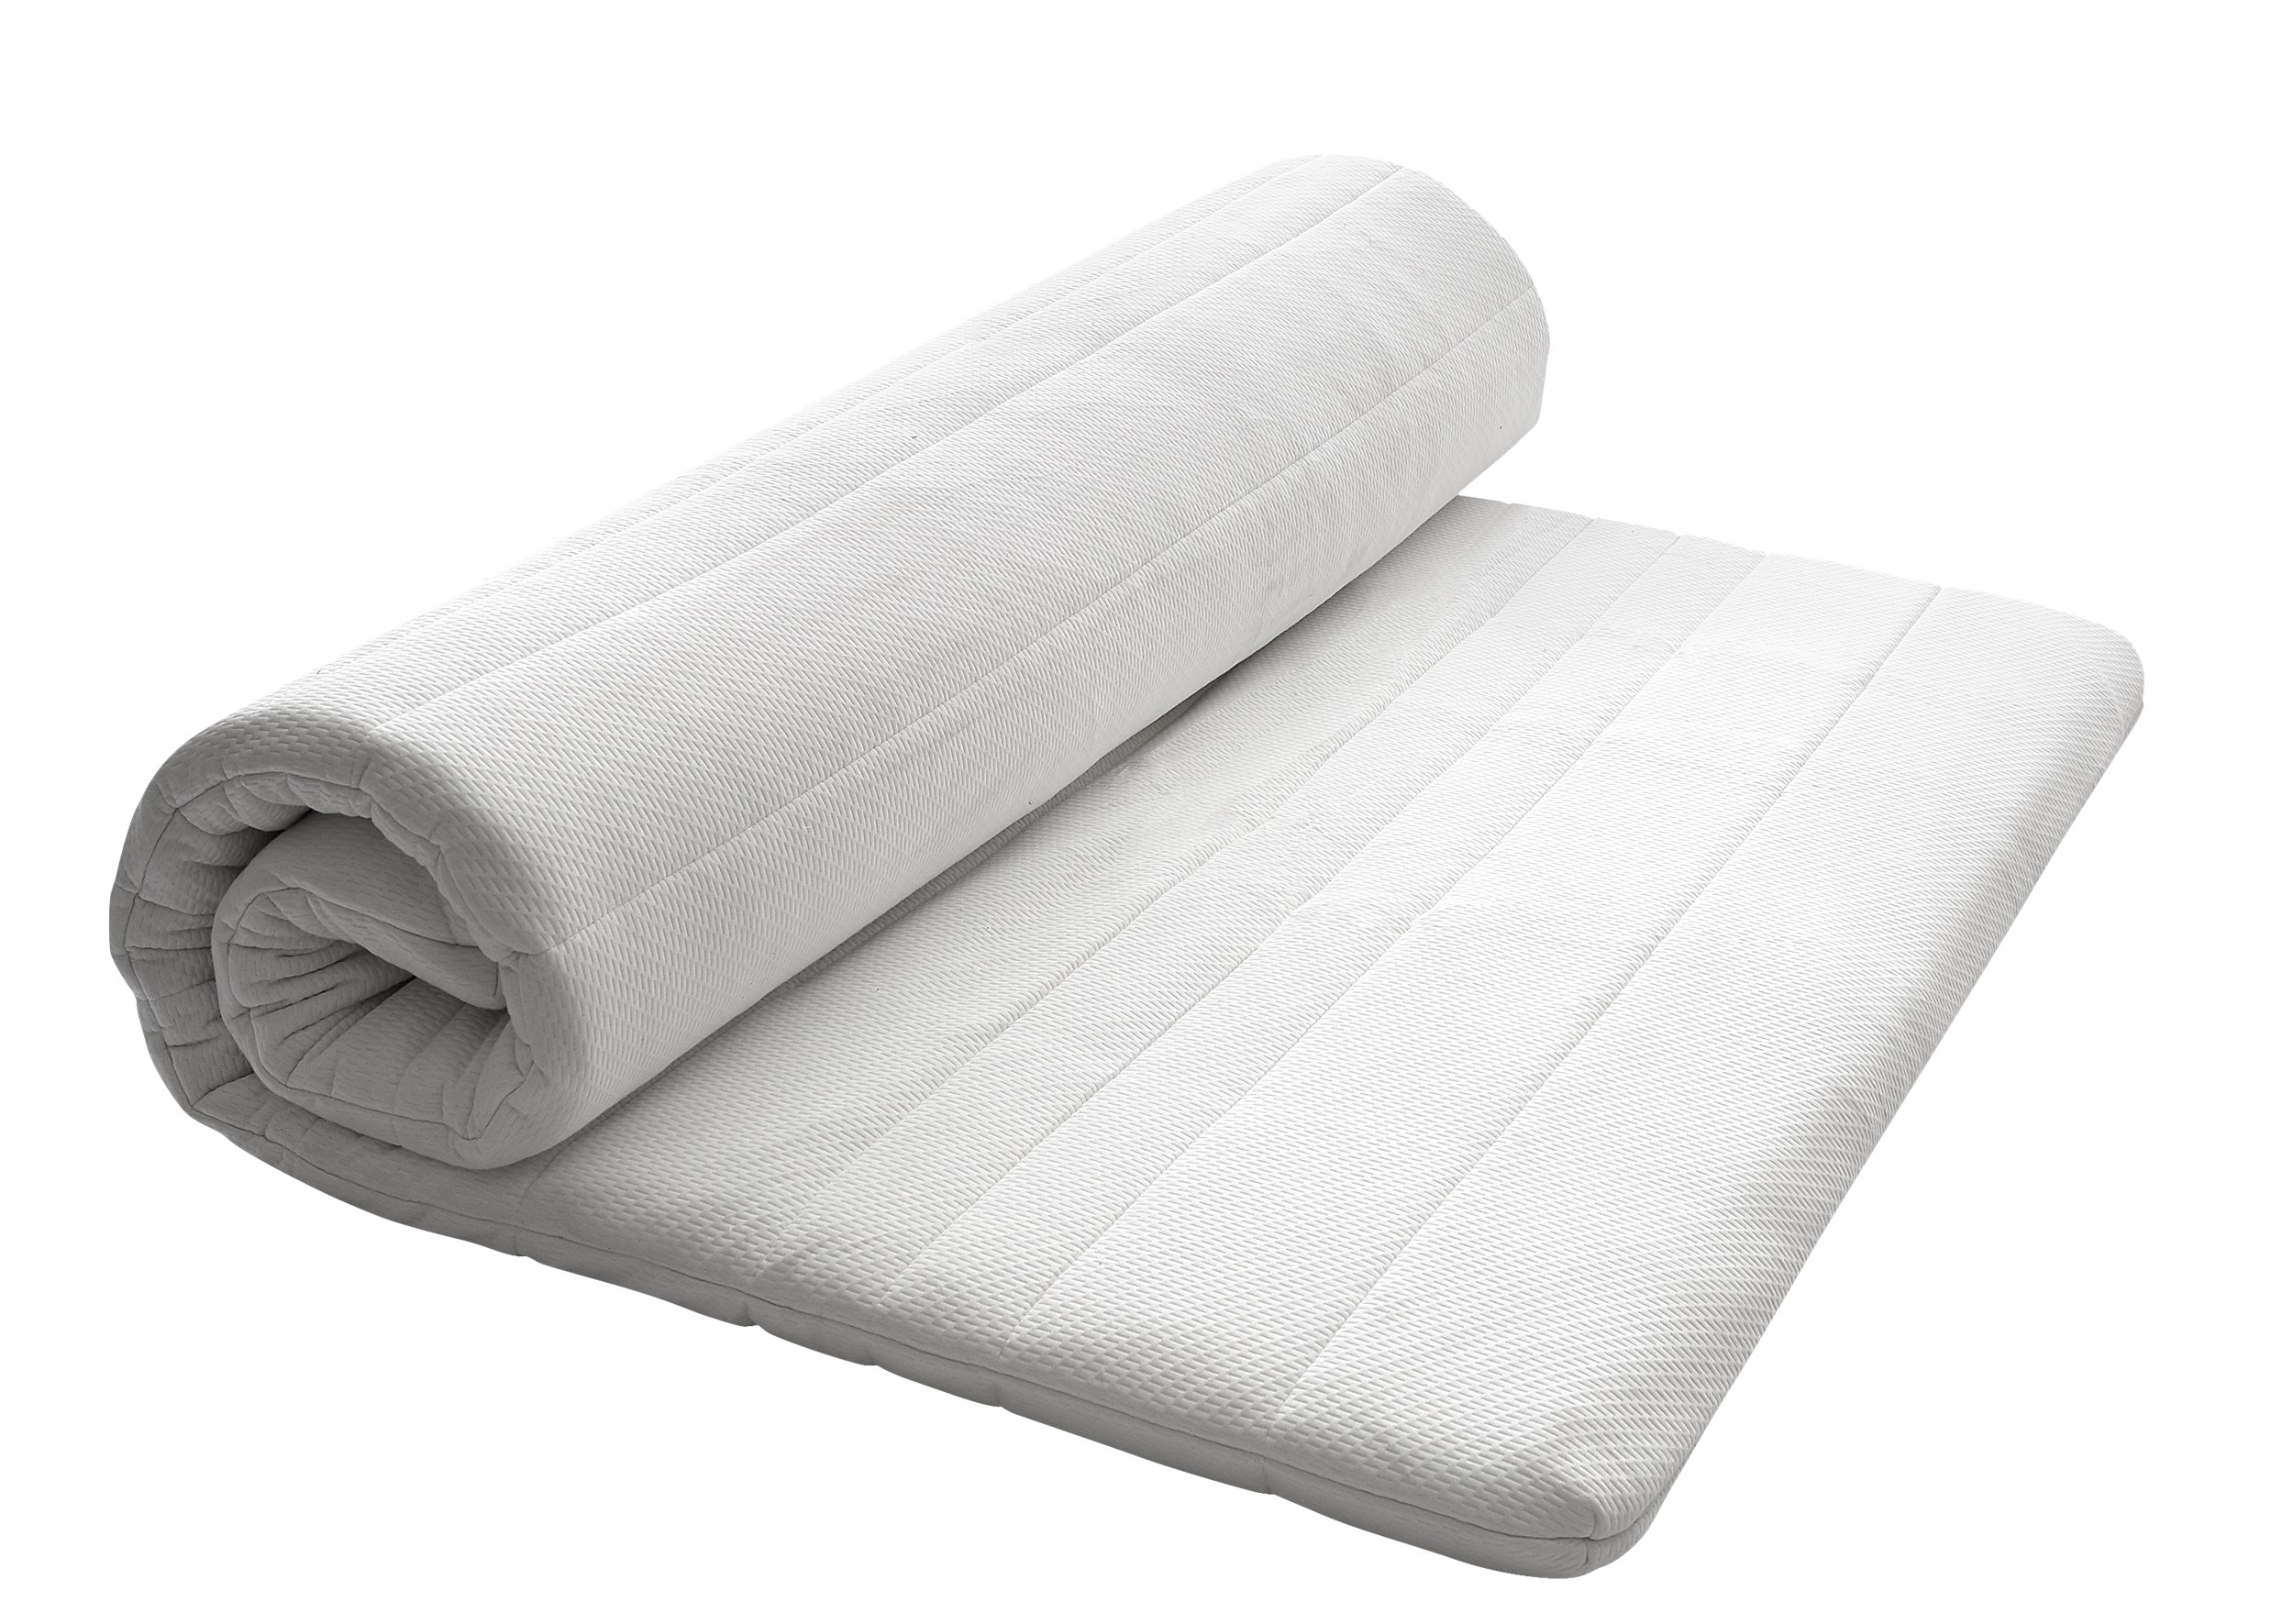 Nocturne Sleep Ultimate Topmadras 140 x 200 x 8 cm - T500 betræk og 5 cm latex